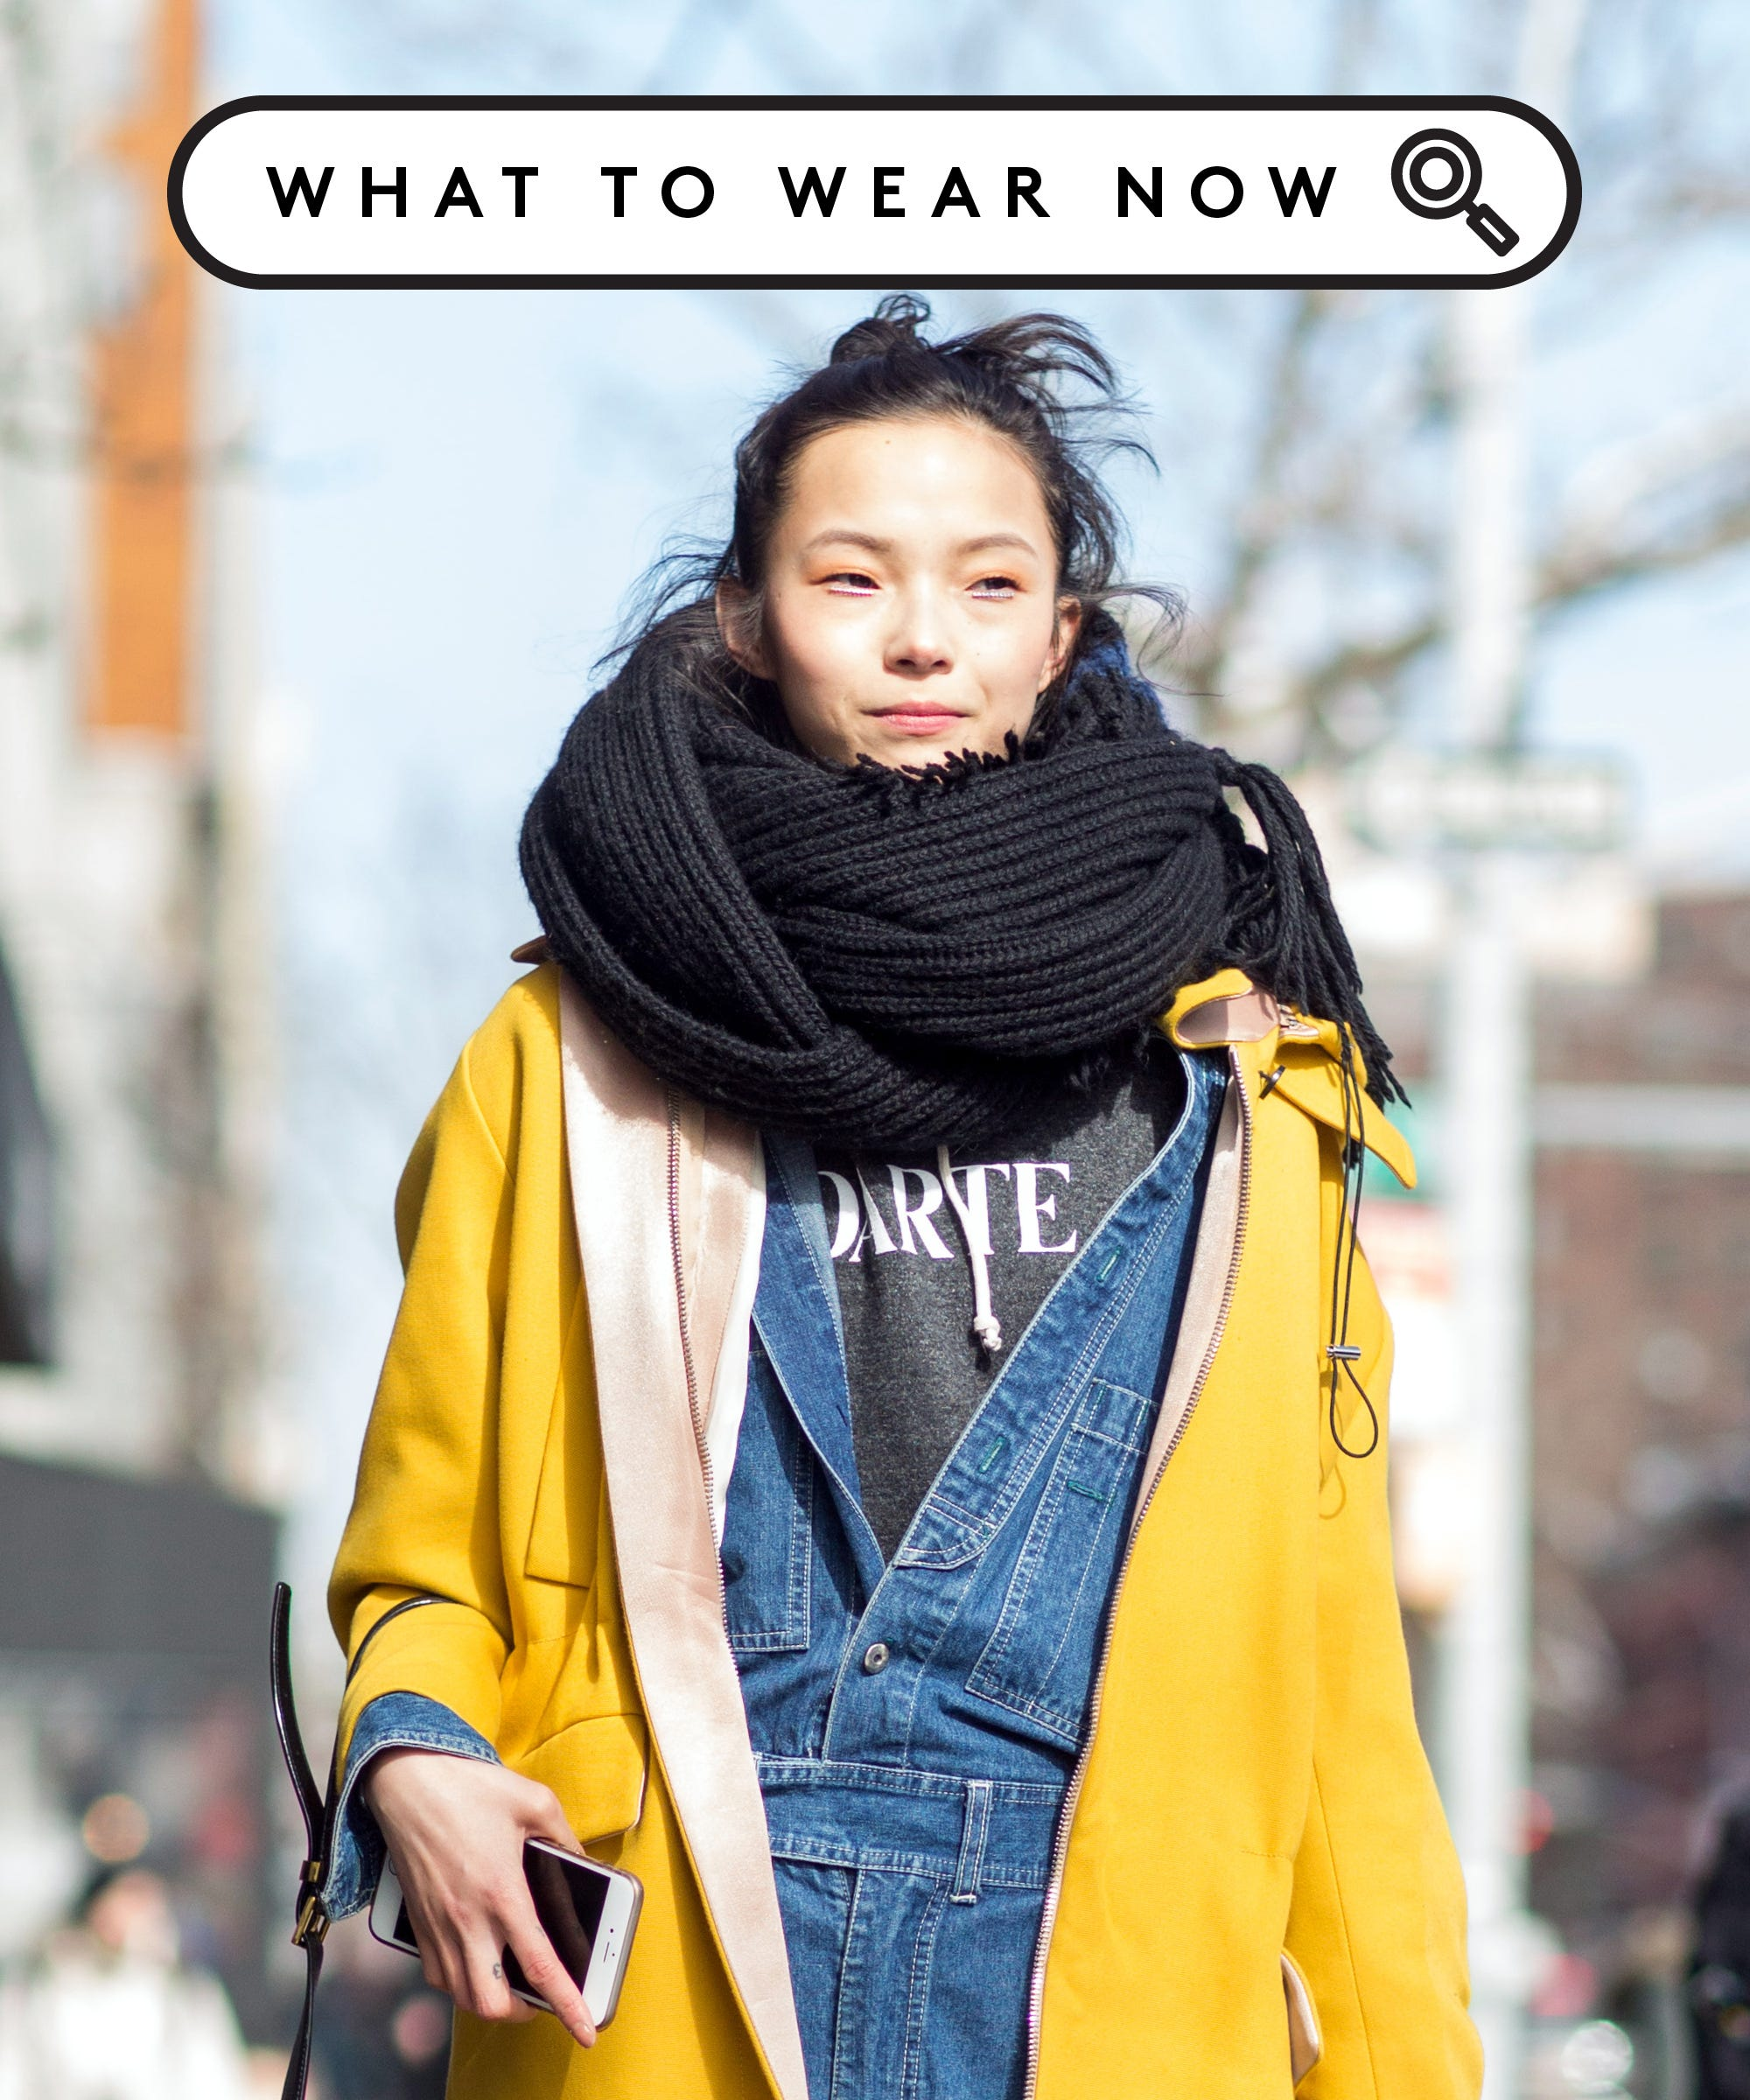 We tie scarves in an original way: 6 basic ways